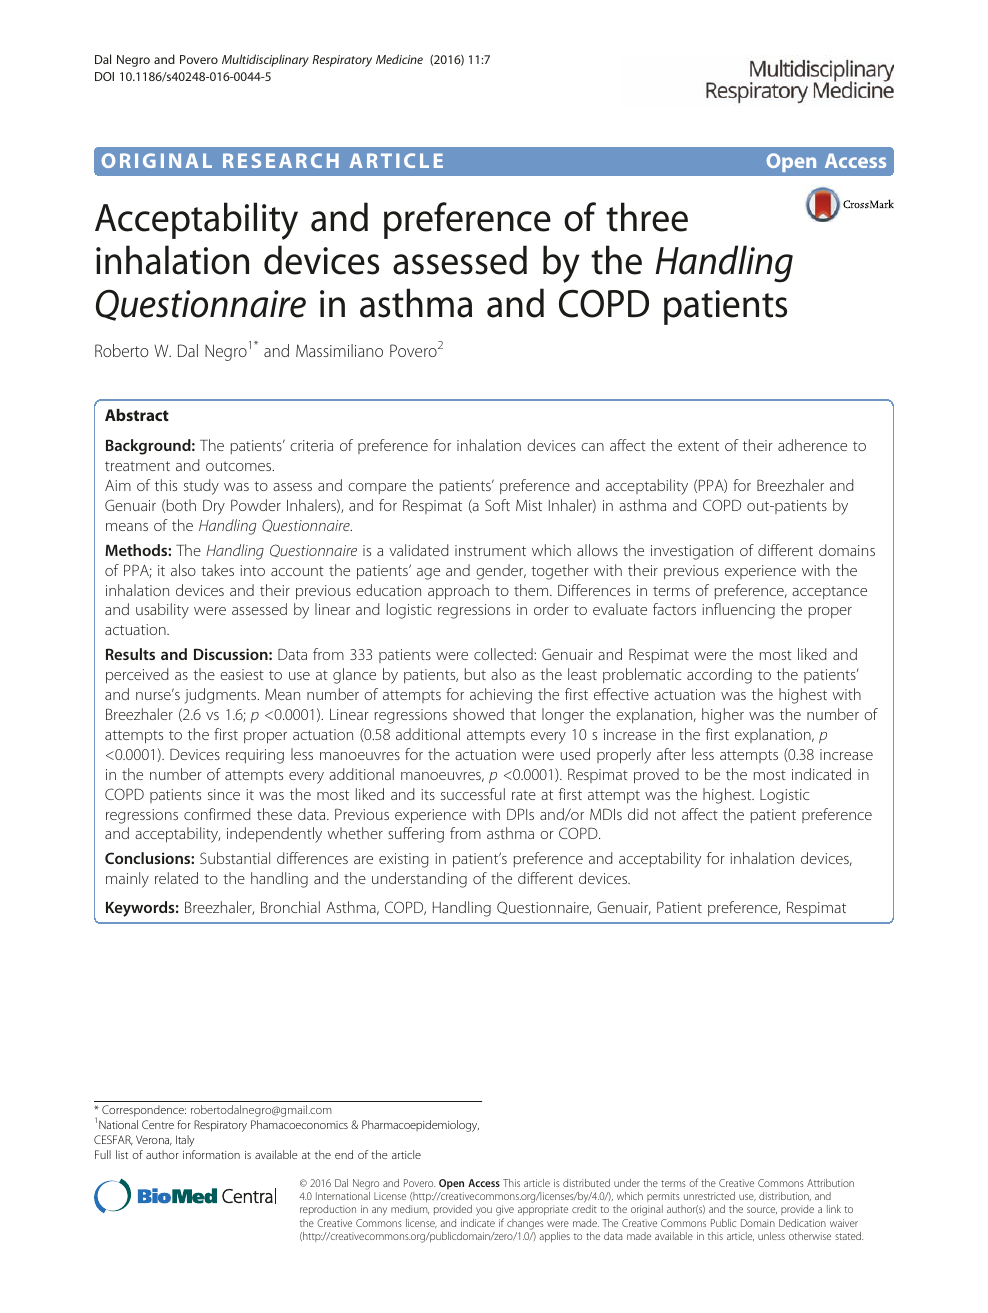 Acceptability And Preference Of Three Inhalation Devices Assessed